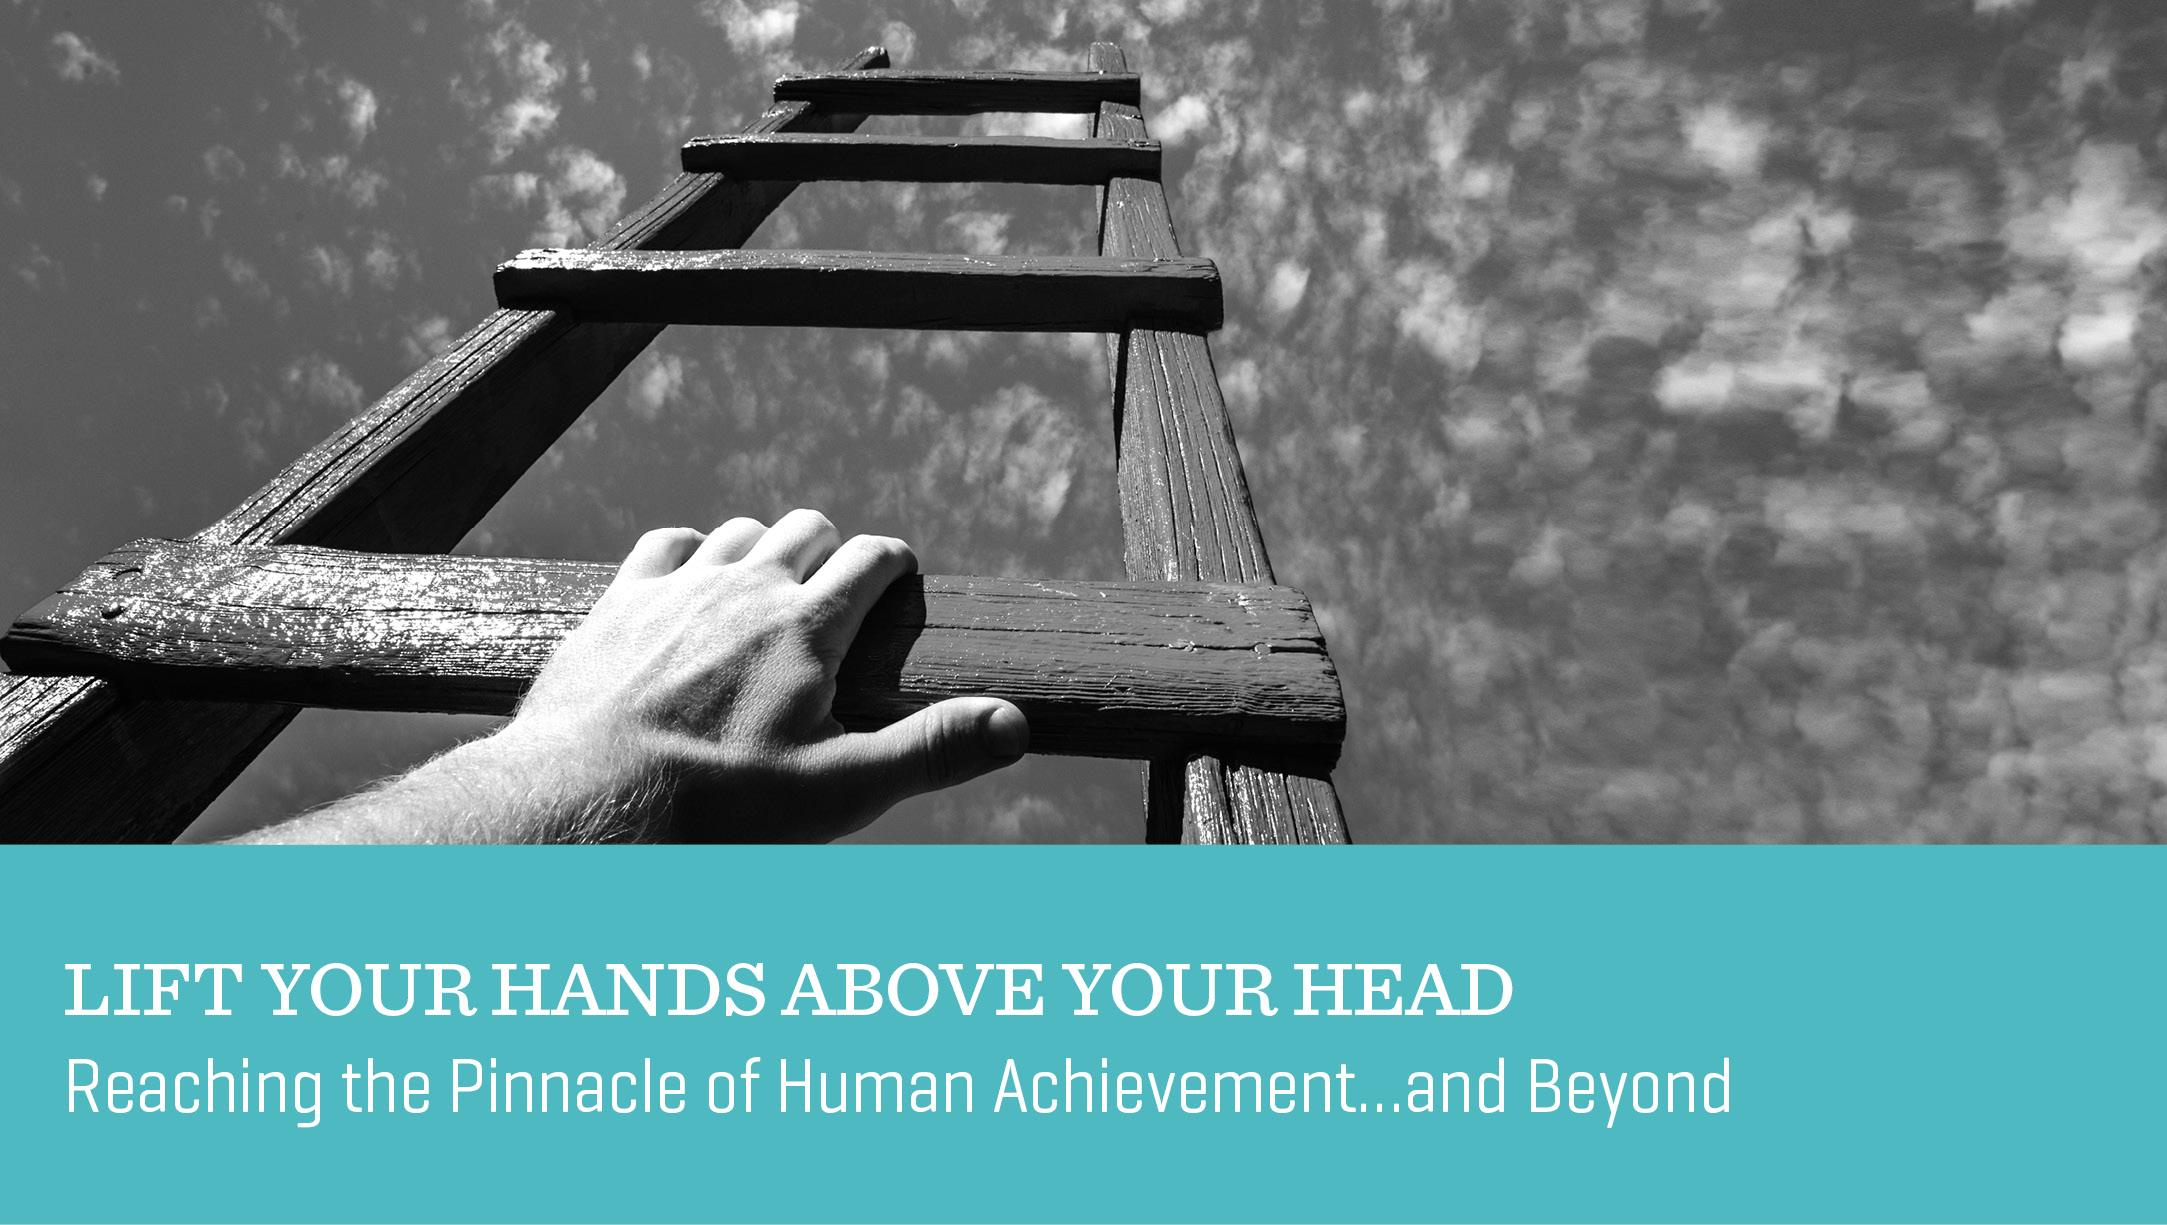 Lift Your Hands above Your Head